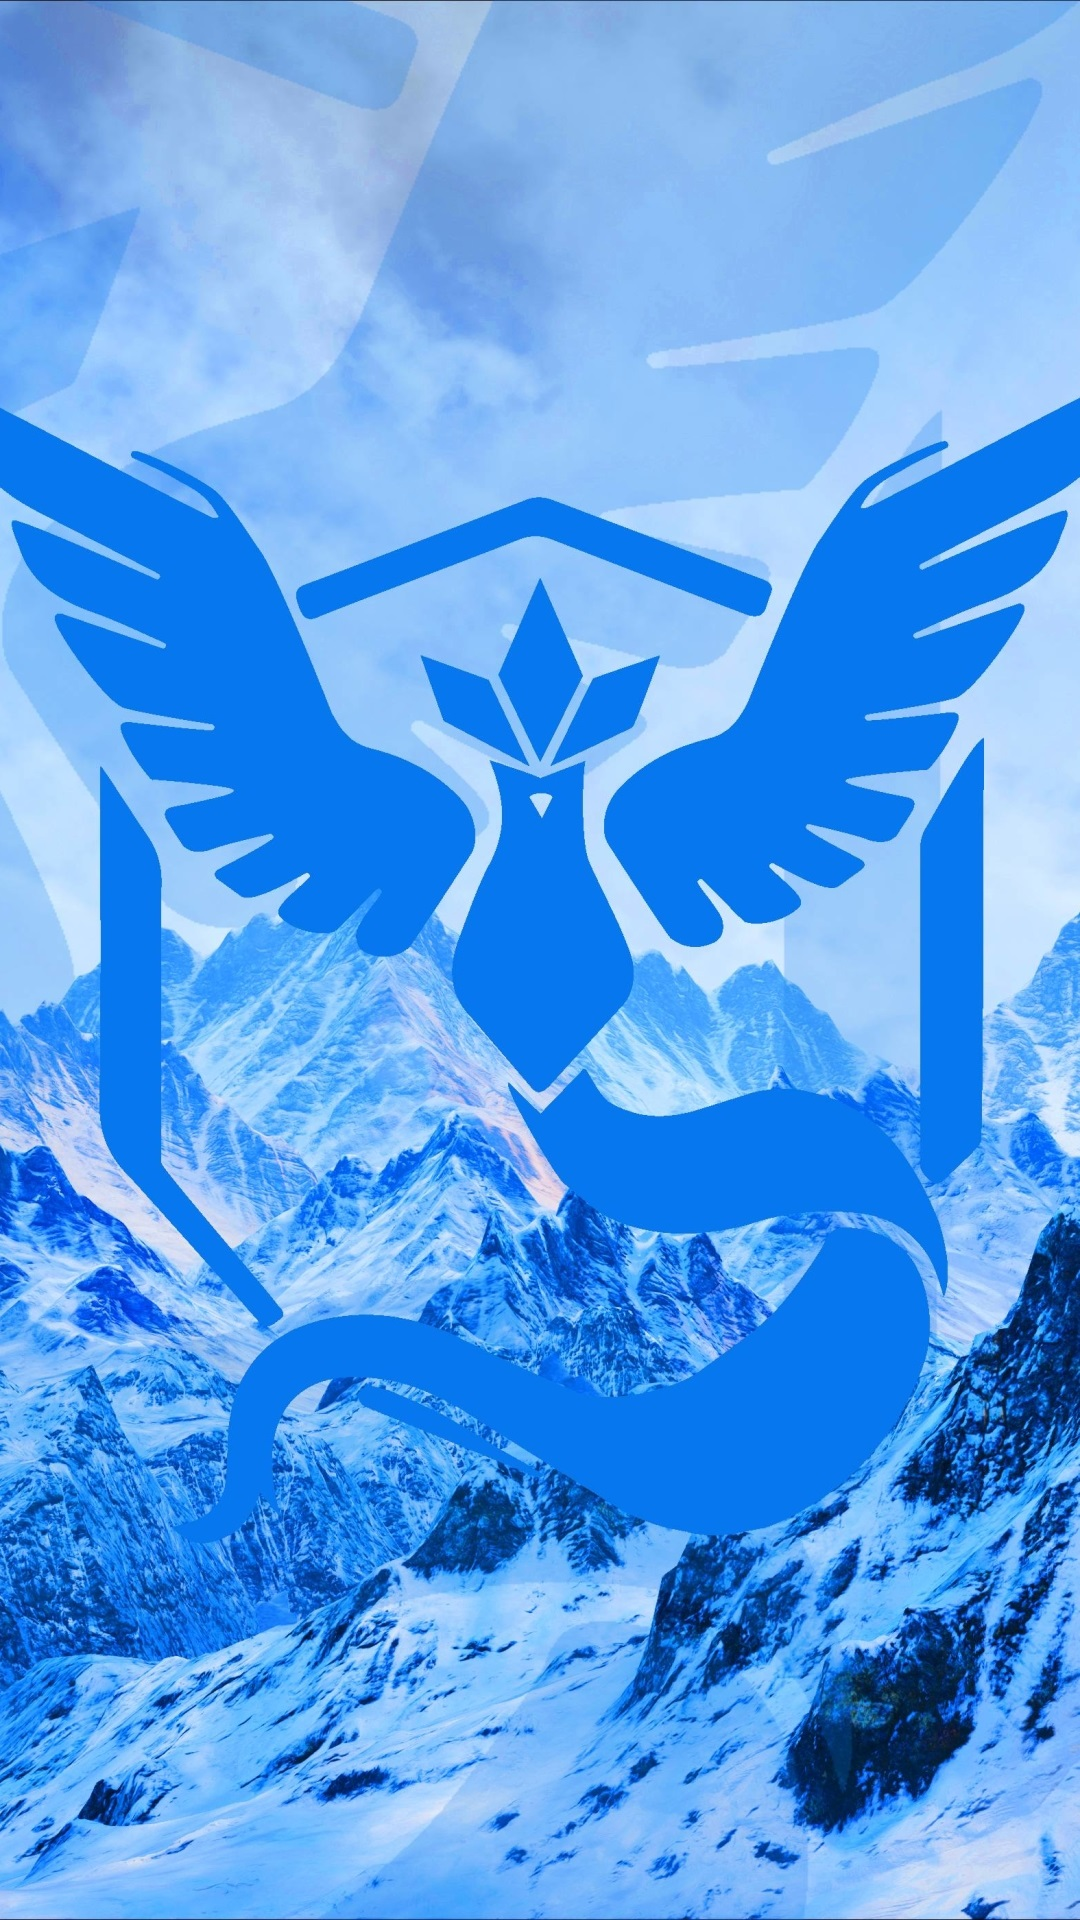 Pokemon Go team mystic cold blue (2) Iphone hd wallpaper - Wallect